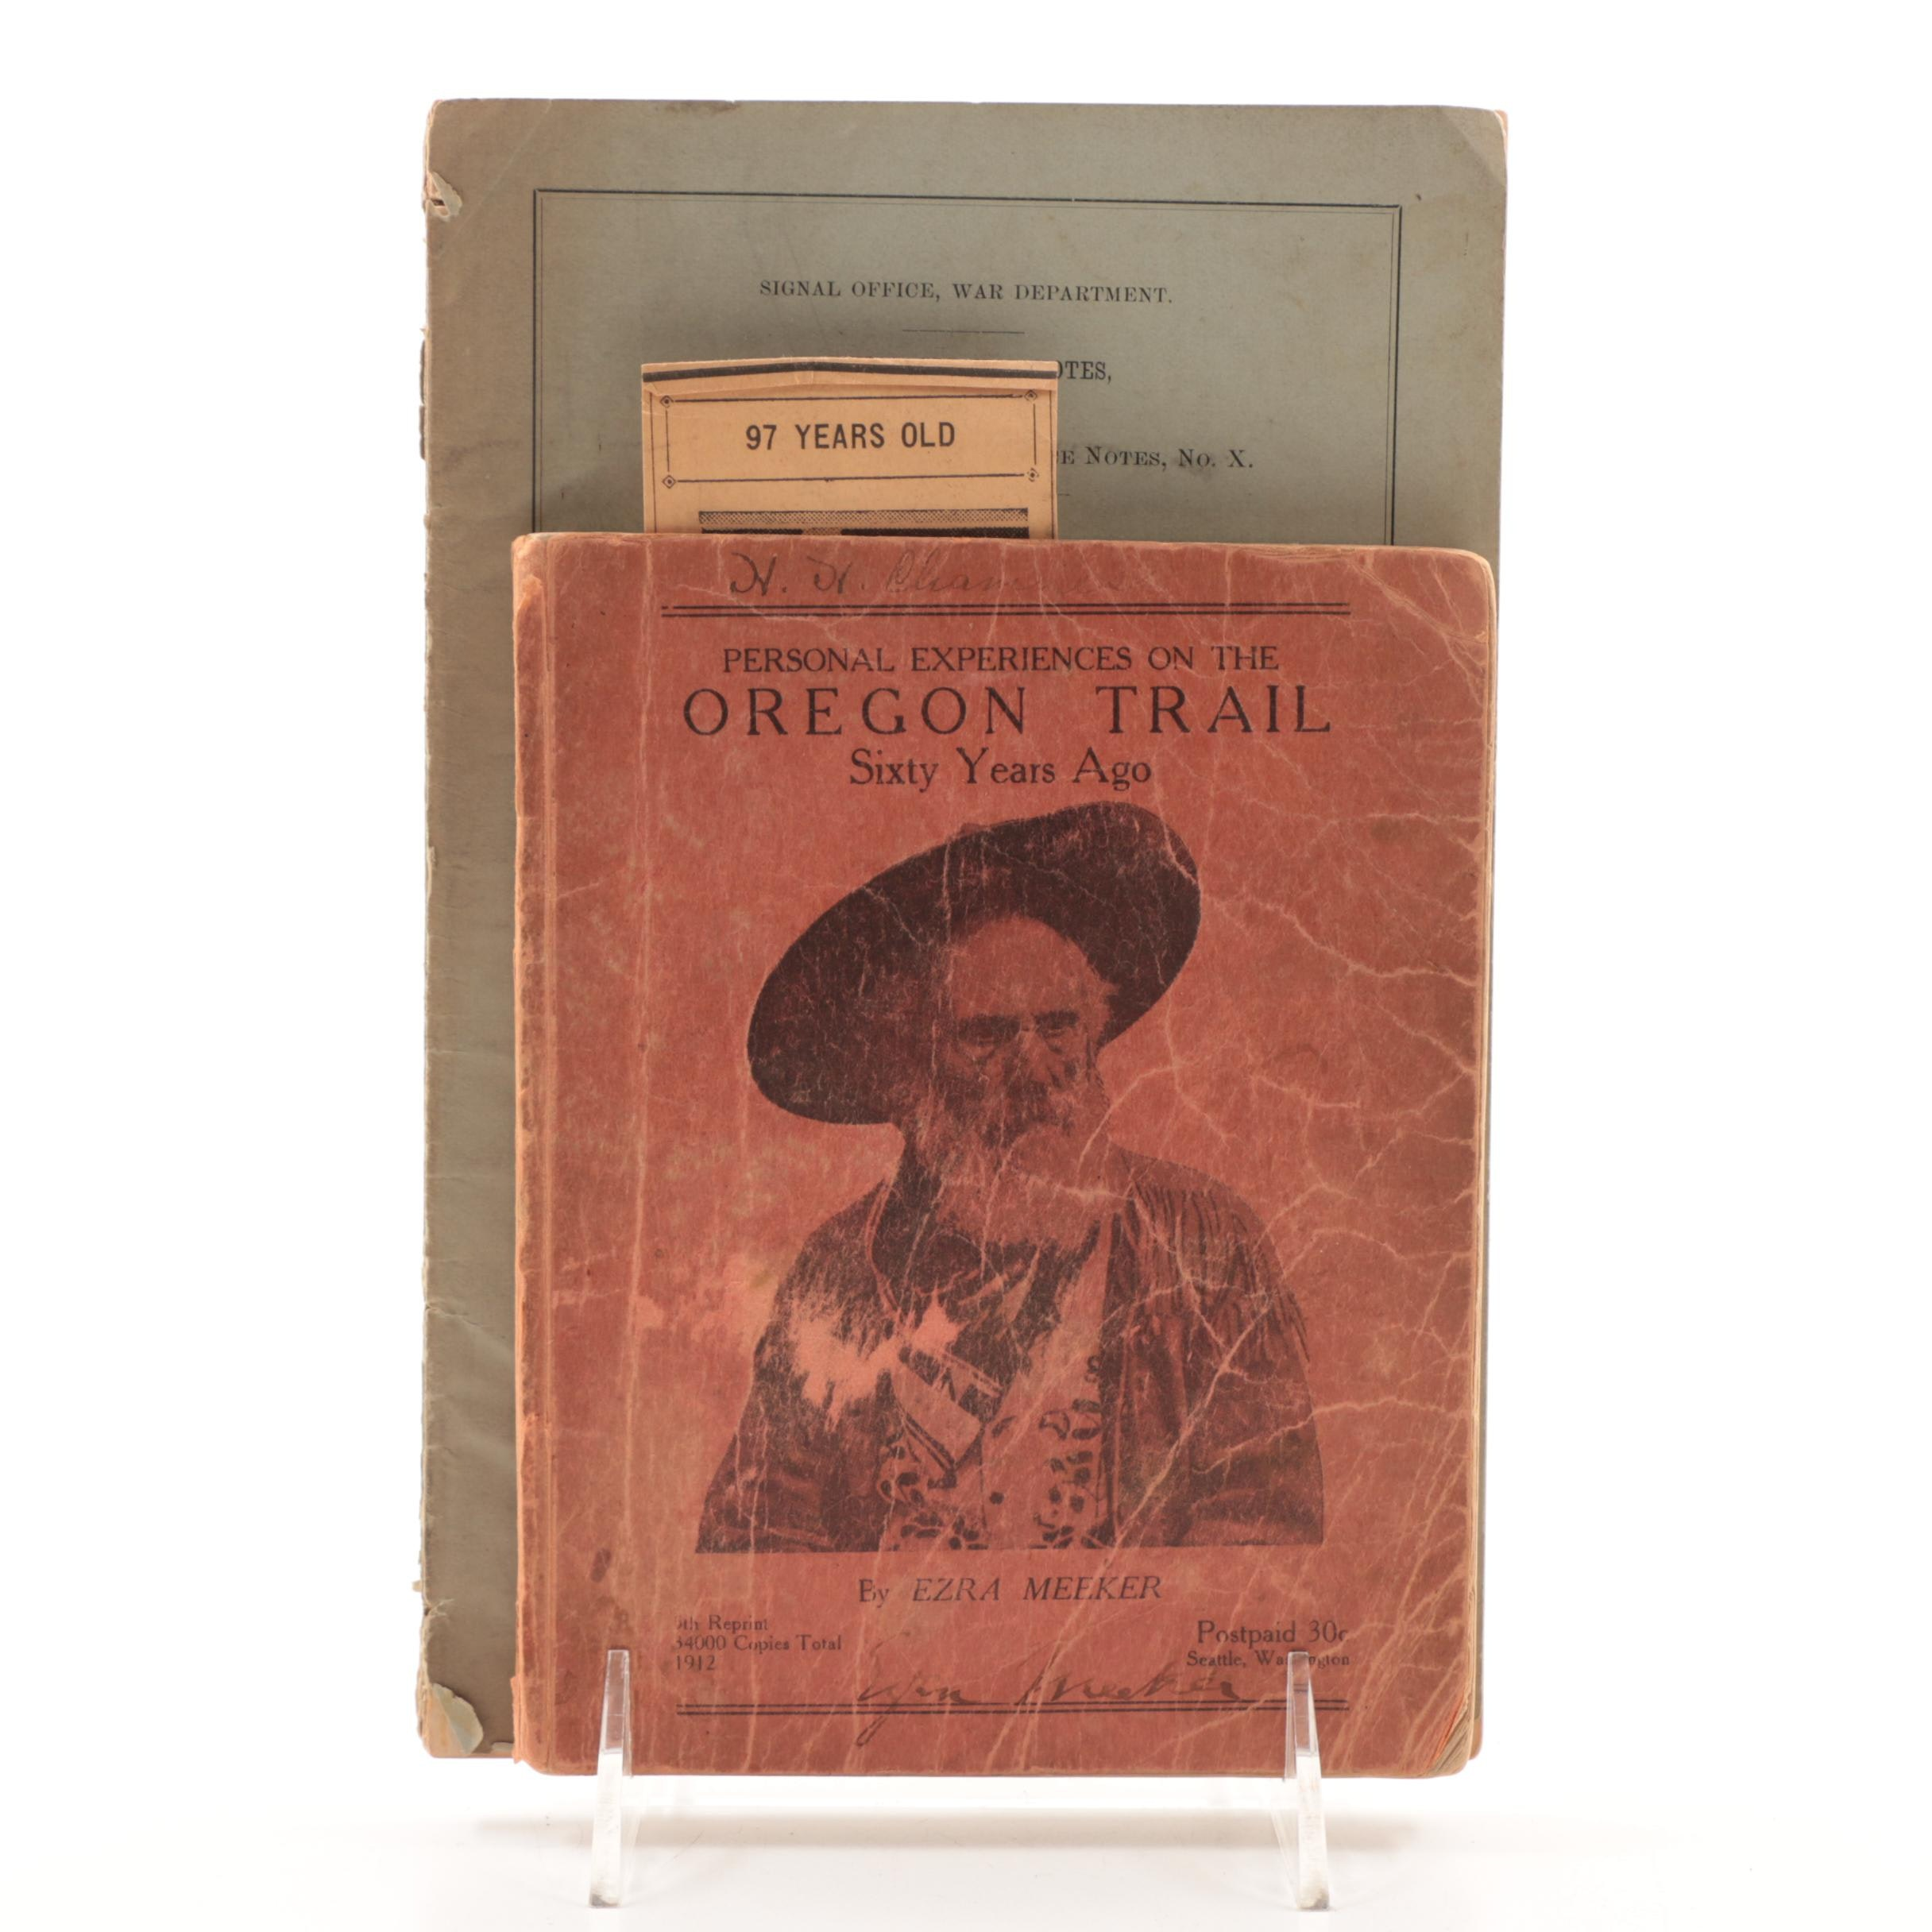 Lady Franklin Bay Expedition and Oregon Trail Exploration Pamphlets